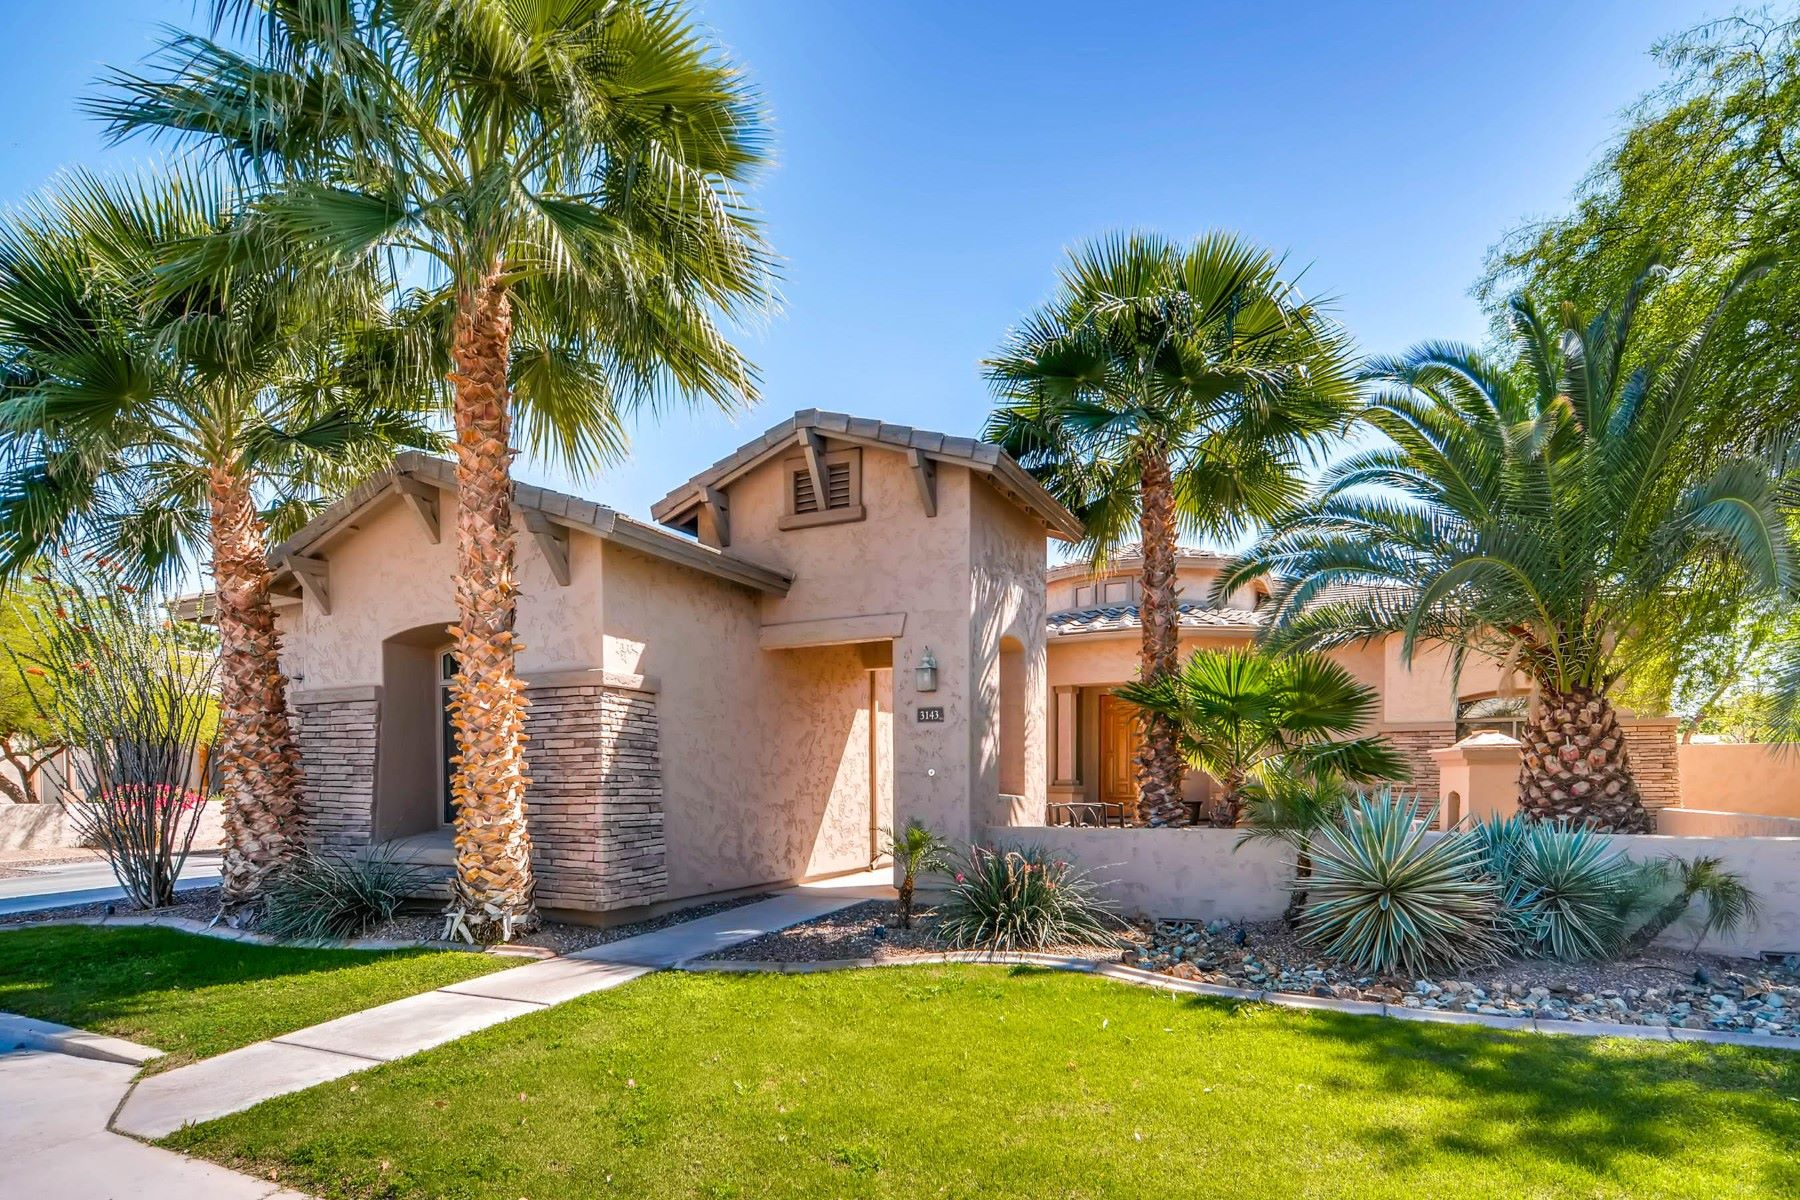 Частный односемейный дом для того Продажа на Sophisticated single-story retreat in Mesquite Grove Estates 3143 E Birchwood Pl Chandler, Аризона 85249 Соединенные Штаты